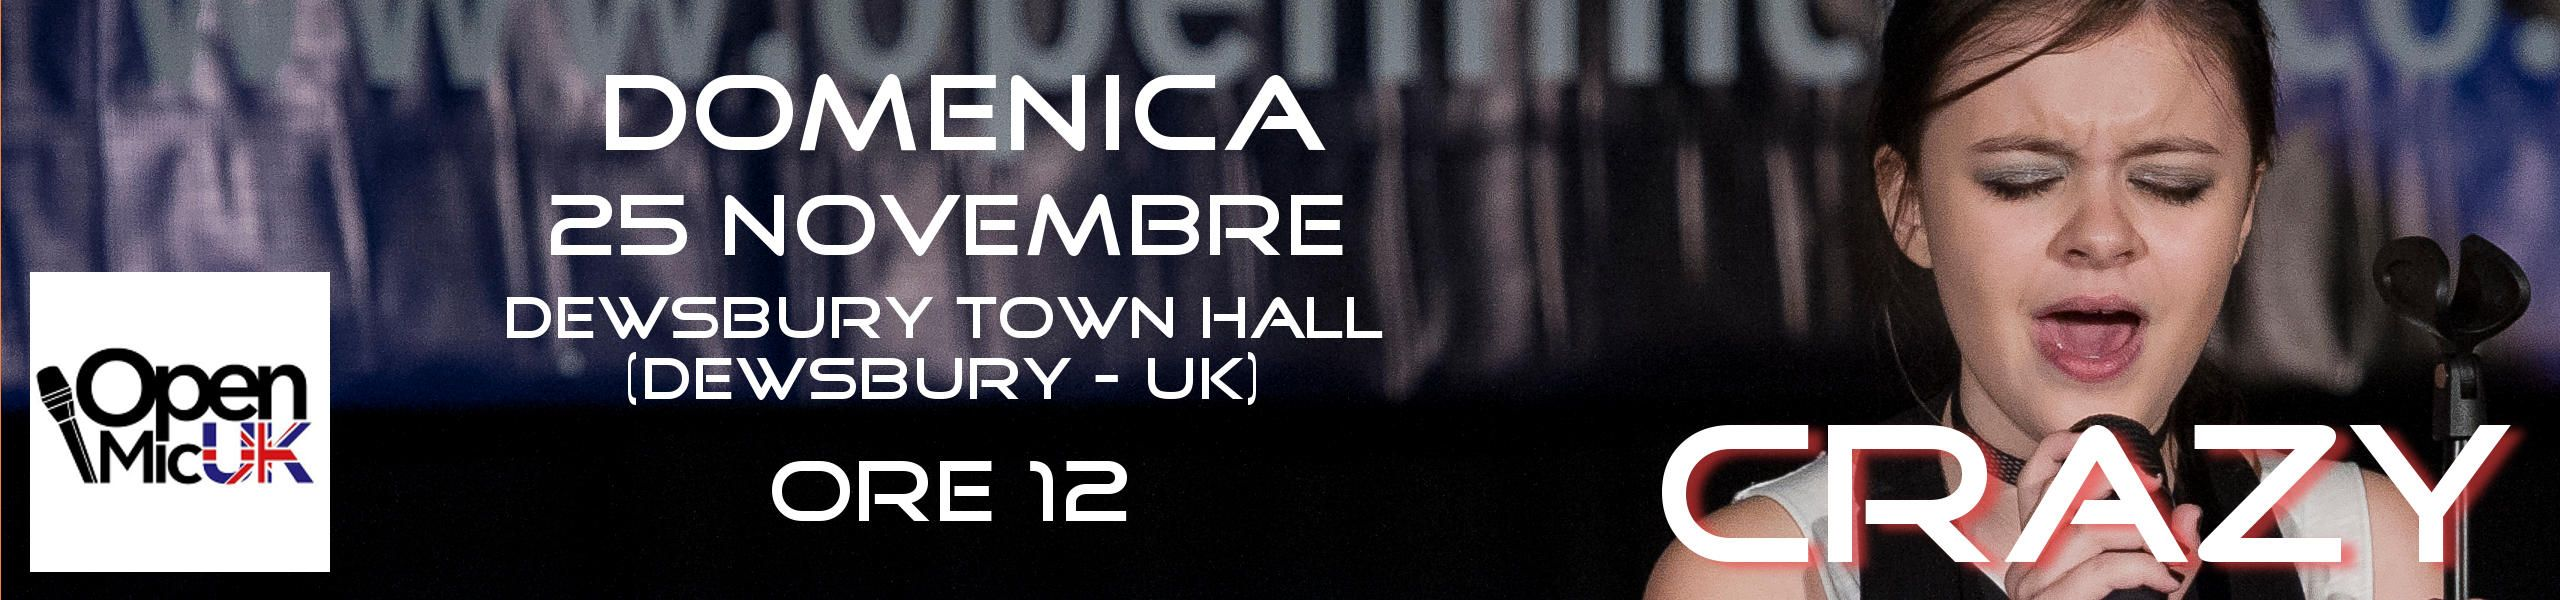 Elisa Neri - Area Fianl - Open Mic UK - Dewsbury Town Hall - UK